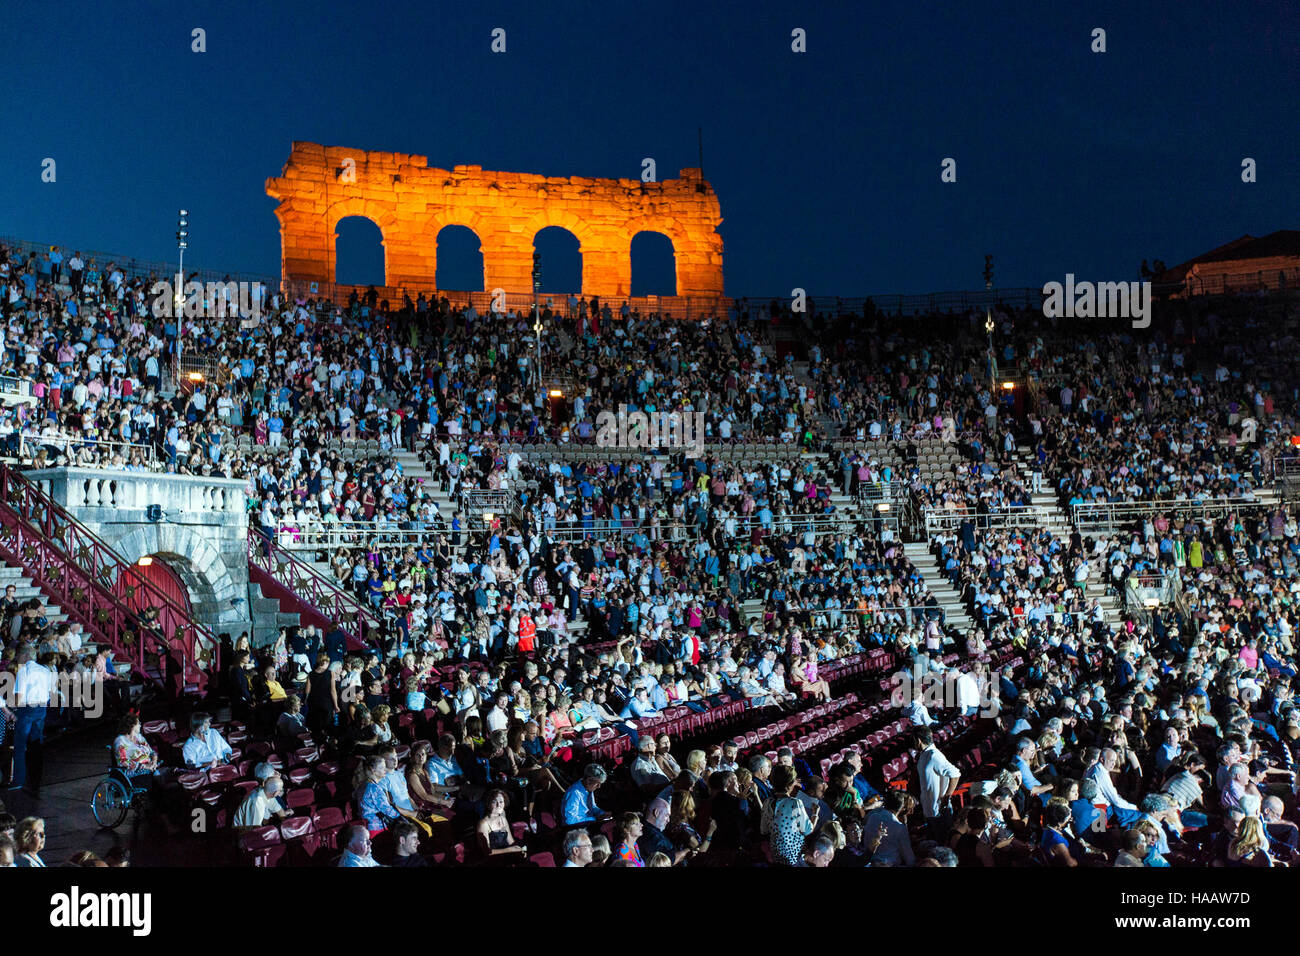 Audience in the Amphitheatre with a performance of the opera Aida in progress, Verona 24 /07/2016    Credit © - Stock Image